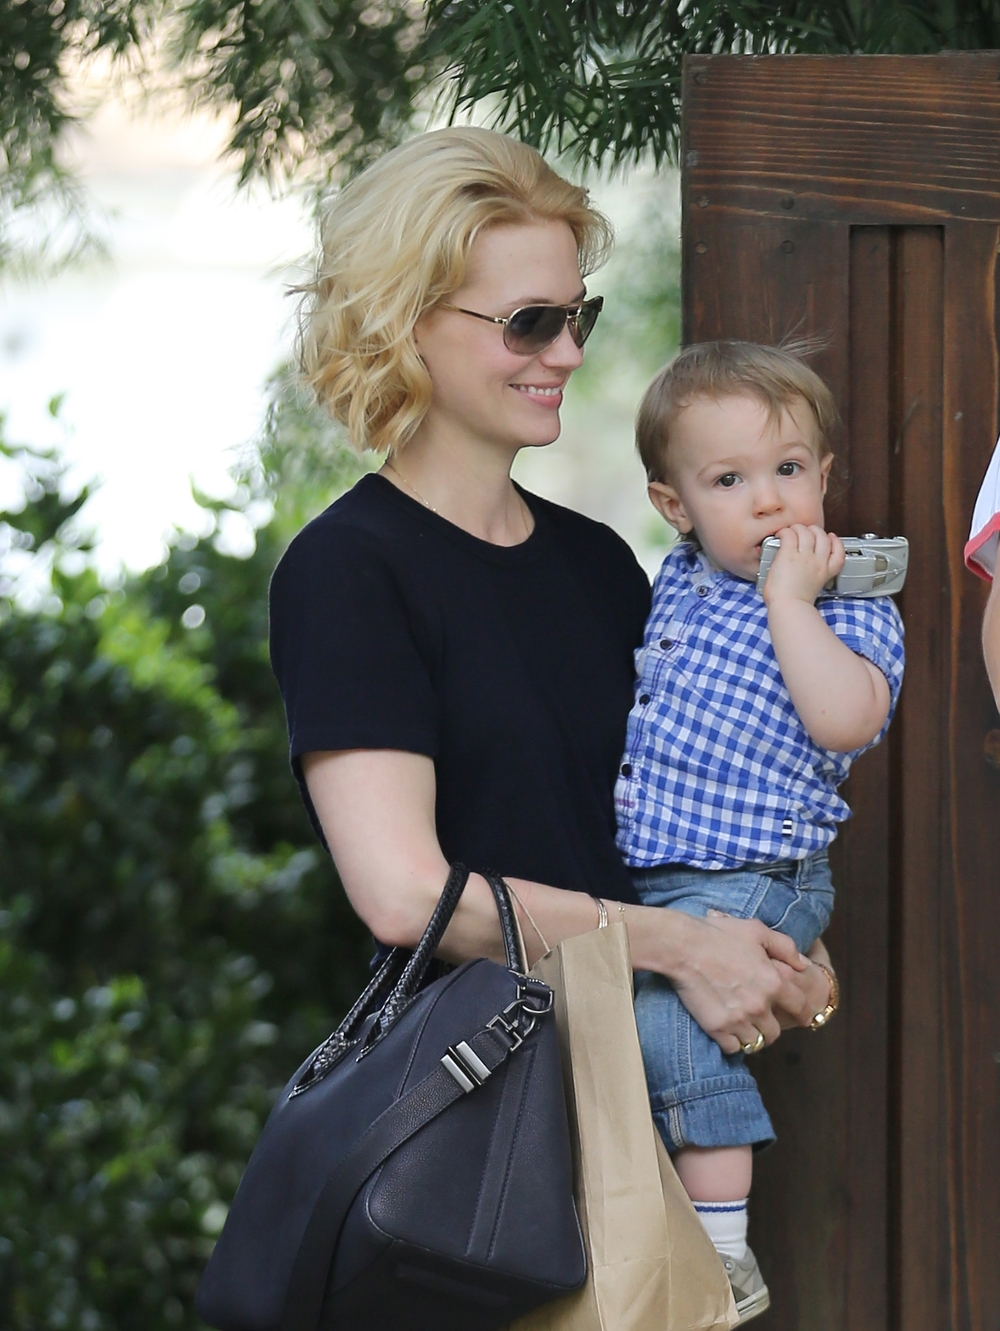 January Jones Says Her Baby Daddy's Identity Is 'My Son's Business'